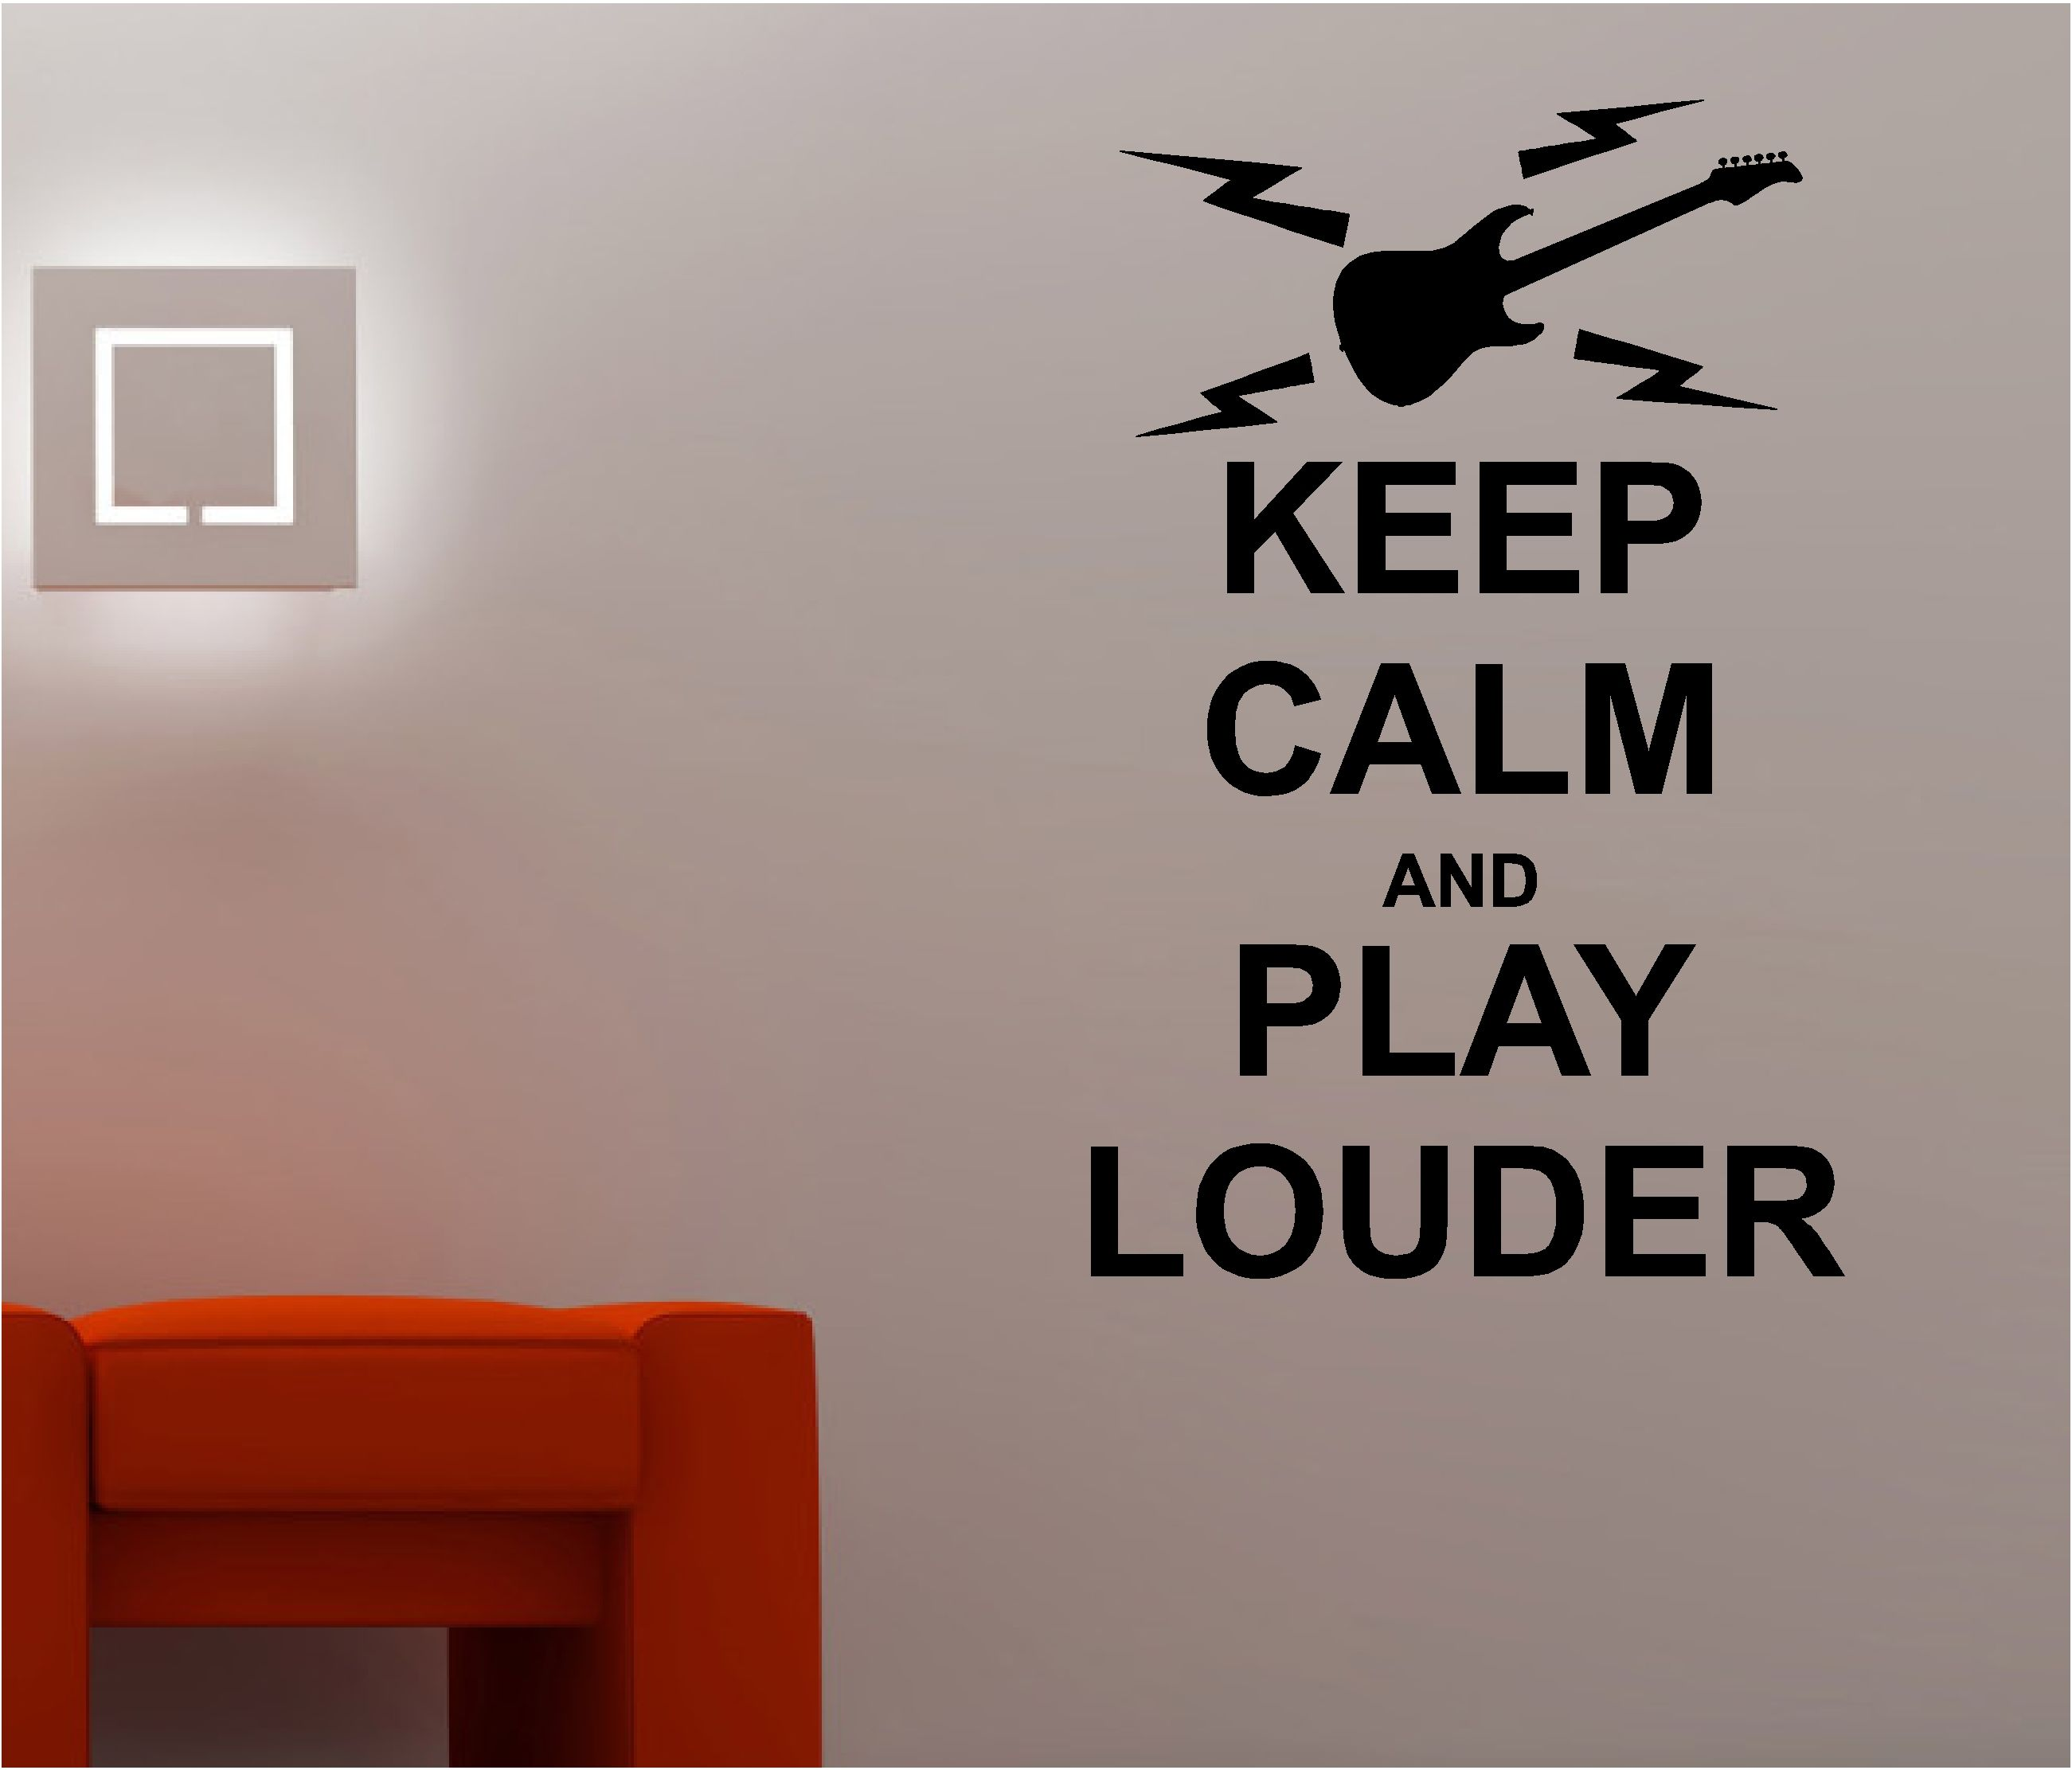 KEEP CALM U0026 PLAY LOUDER Music Wall Art Sticker Quote Decal Bedroom Lounge